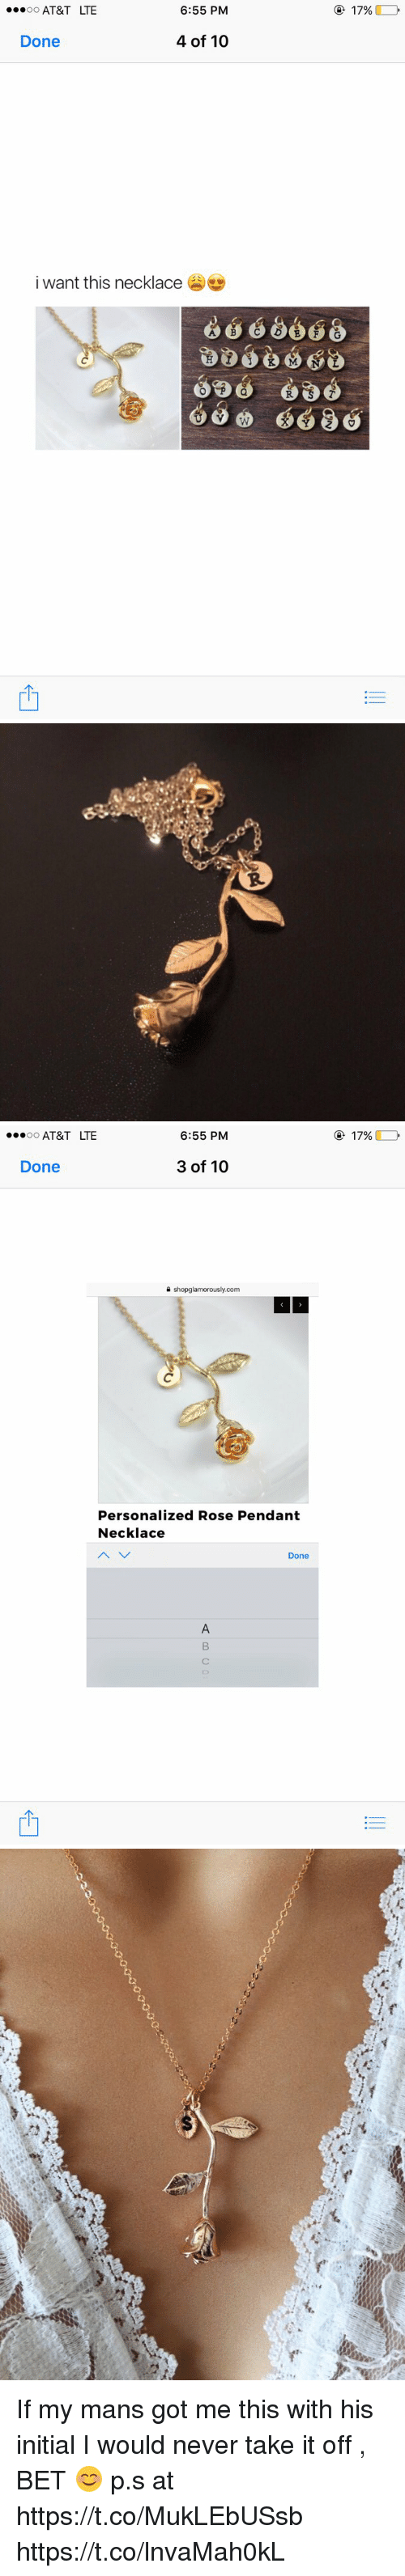 Funny, At&t, and Rose: 6:55 PM  OO  AT&T LTE  4 of 10  Done  i want this necklace  17%   OO  AT&T LTE  6:55 PM  3 of 10  Done  shopglamorously.com  Personalized Rose Pendant  Necklace  Done  17%   캣 If my mans got me this with his initial I would never take it off , BET 😊  p.s at https://t.co/MukLEbUSsb https://t.co/lnvaMah0kL